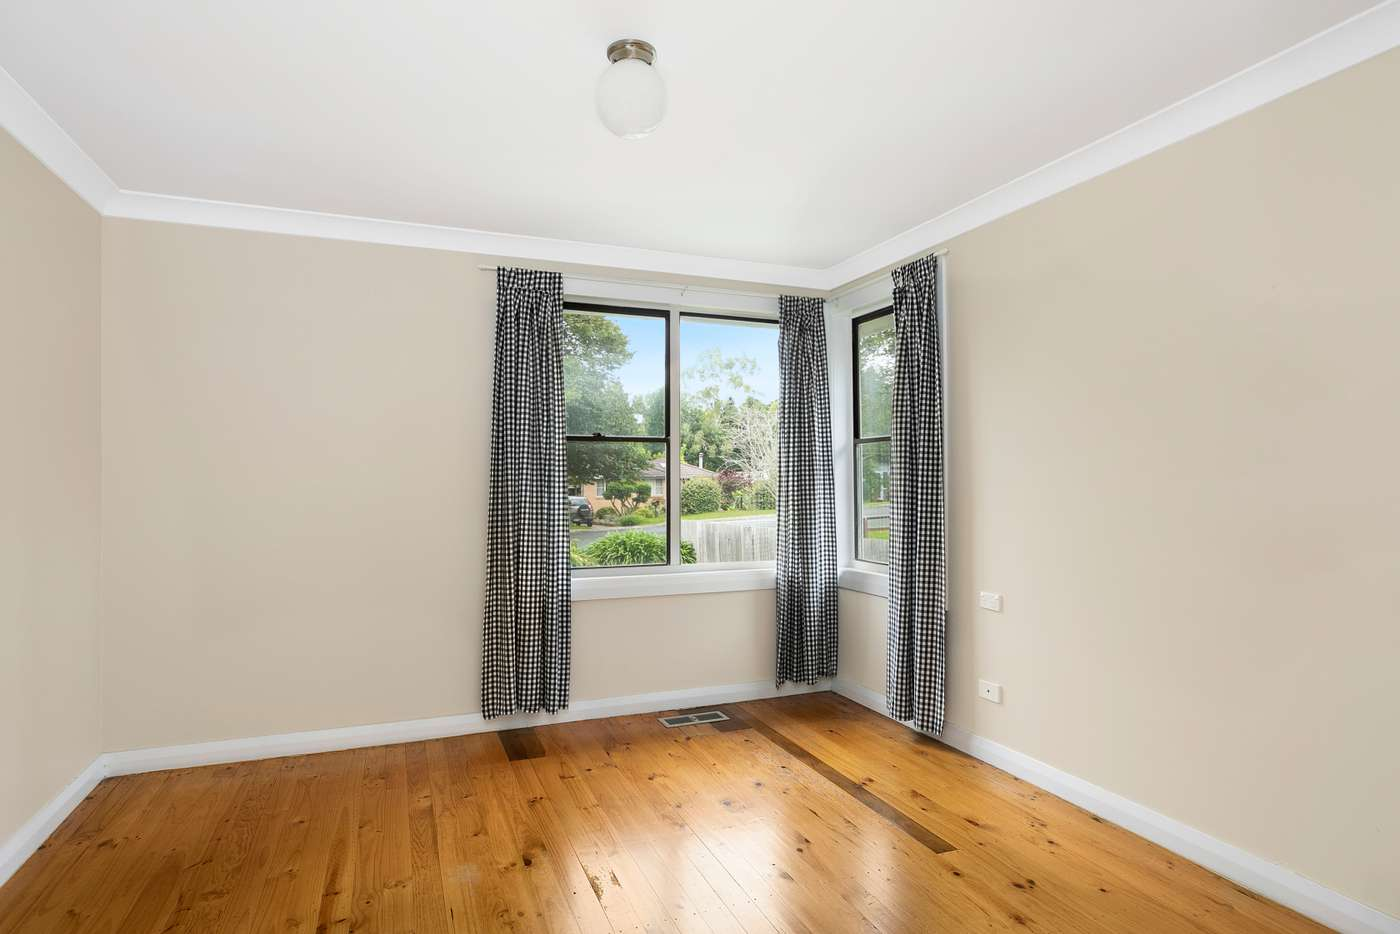 Seventh view of Homely house listing, 6 Sheaffe Street, Bowral NSW 2576